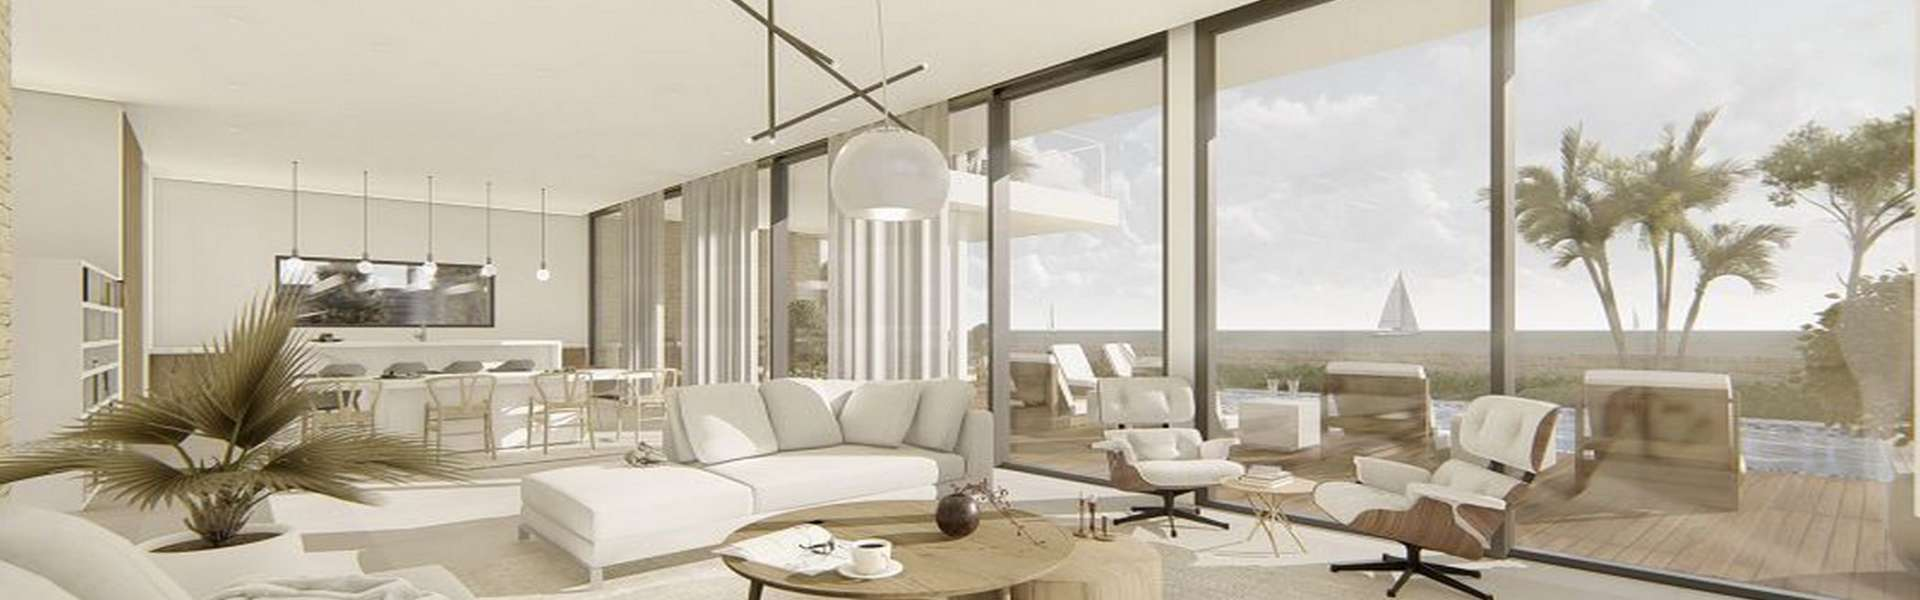 Cala Vinyes - New project with sea view and extraordinary design